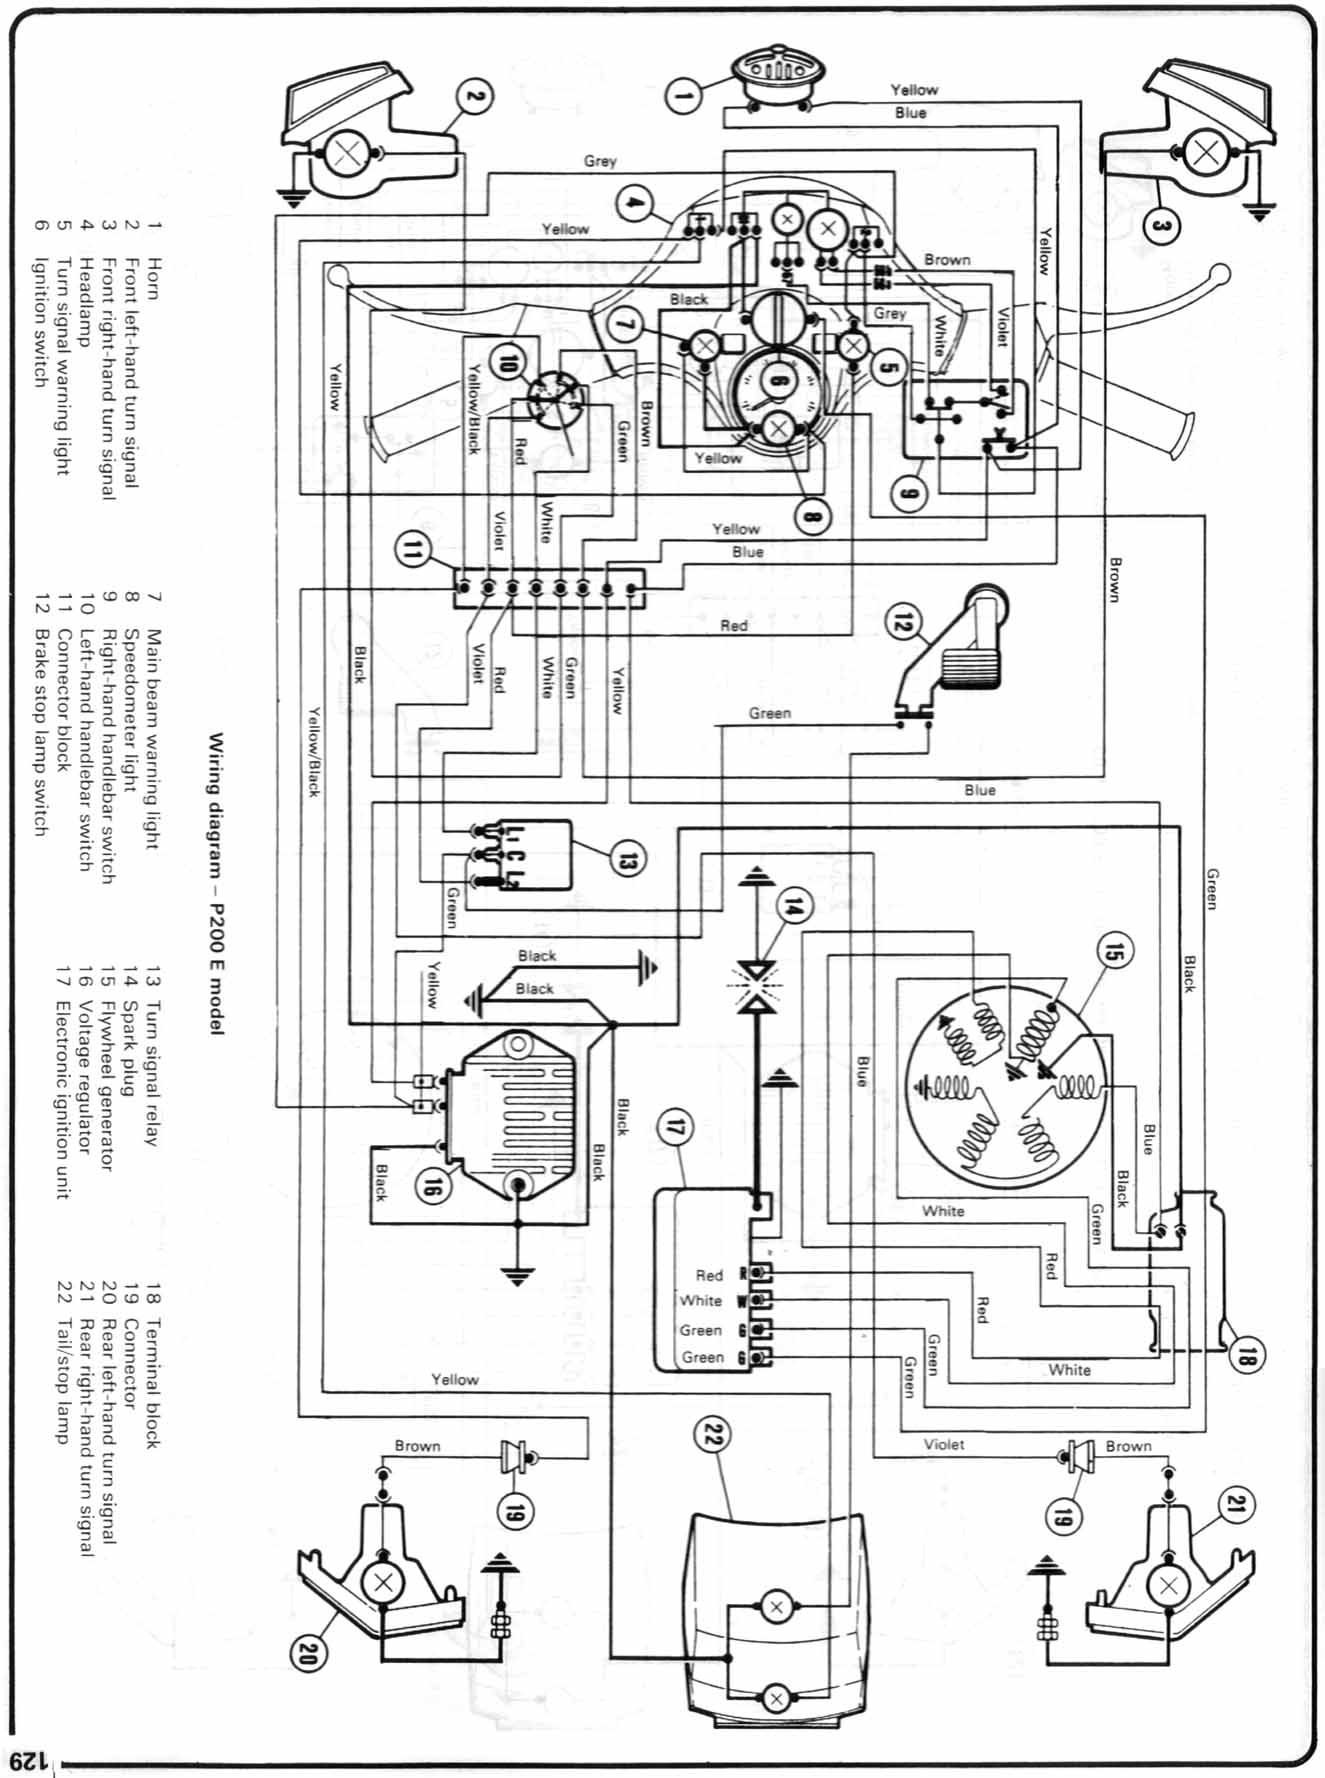 vespa p series maintenance repair rh vespamaintenance com vespa p125x wiring diagram vespa p125x wiring diagram